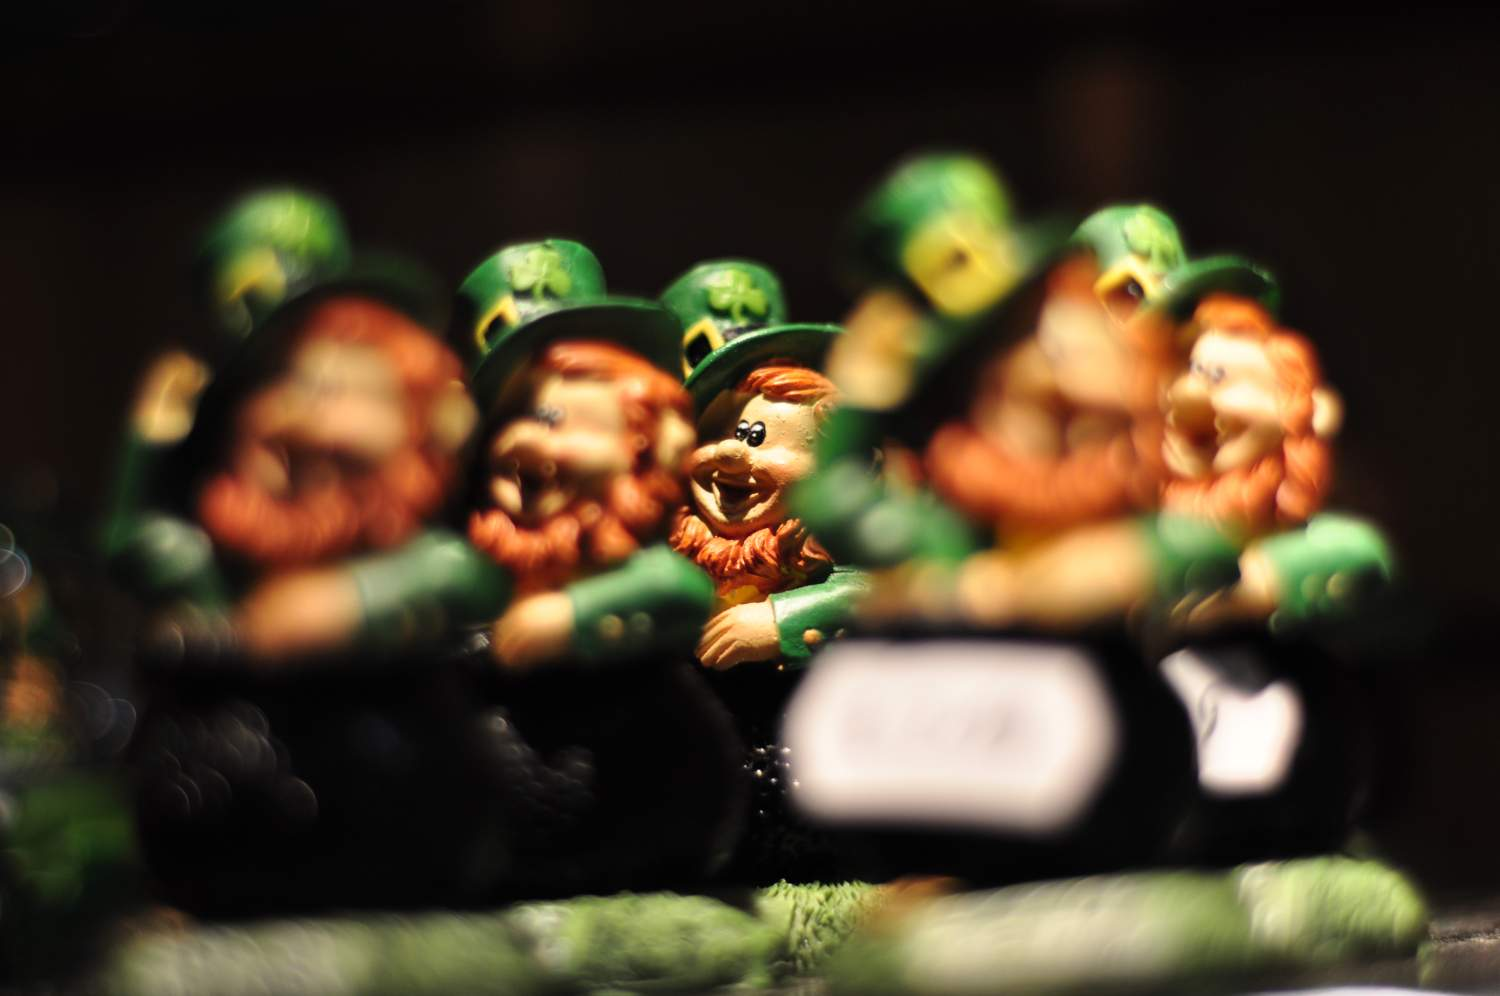 Leprechauns, Ireland's tale and legend